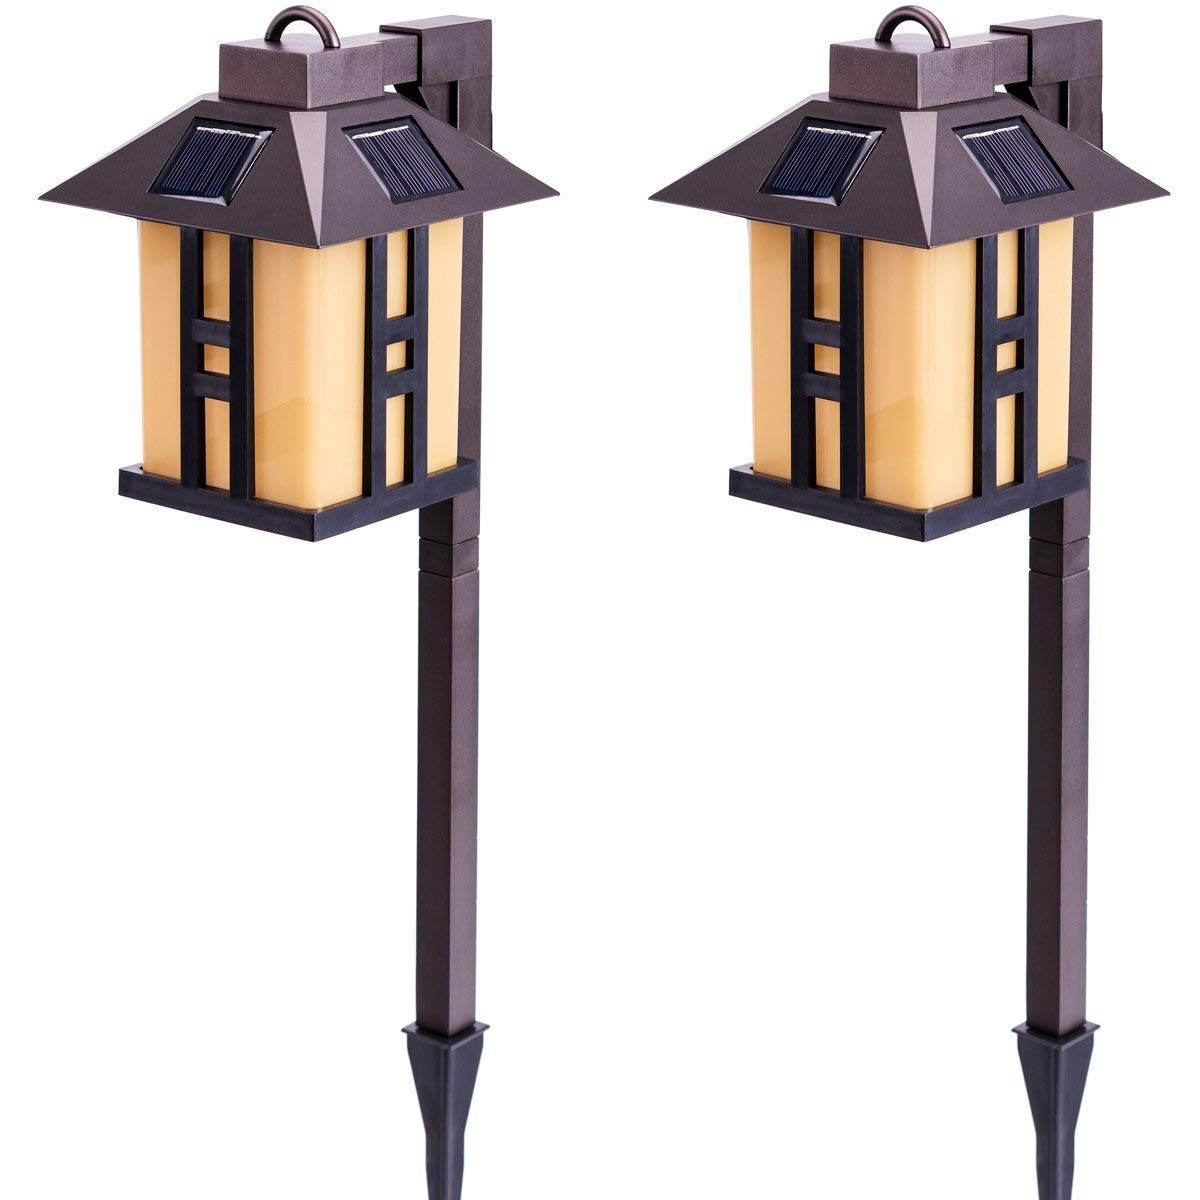 GIGALUMI Solar Powered Path Lights, Solar Garden Lights Outdoor, Landscape Lighting Lawn/Patio/Yard/Pathway/Walkway/Driveway (2 Pack)